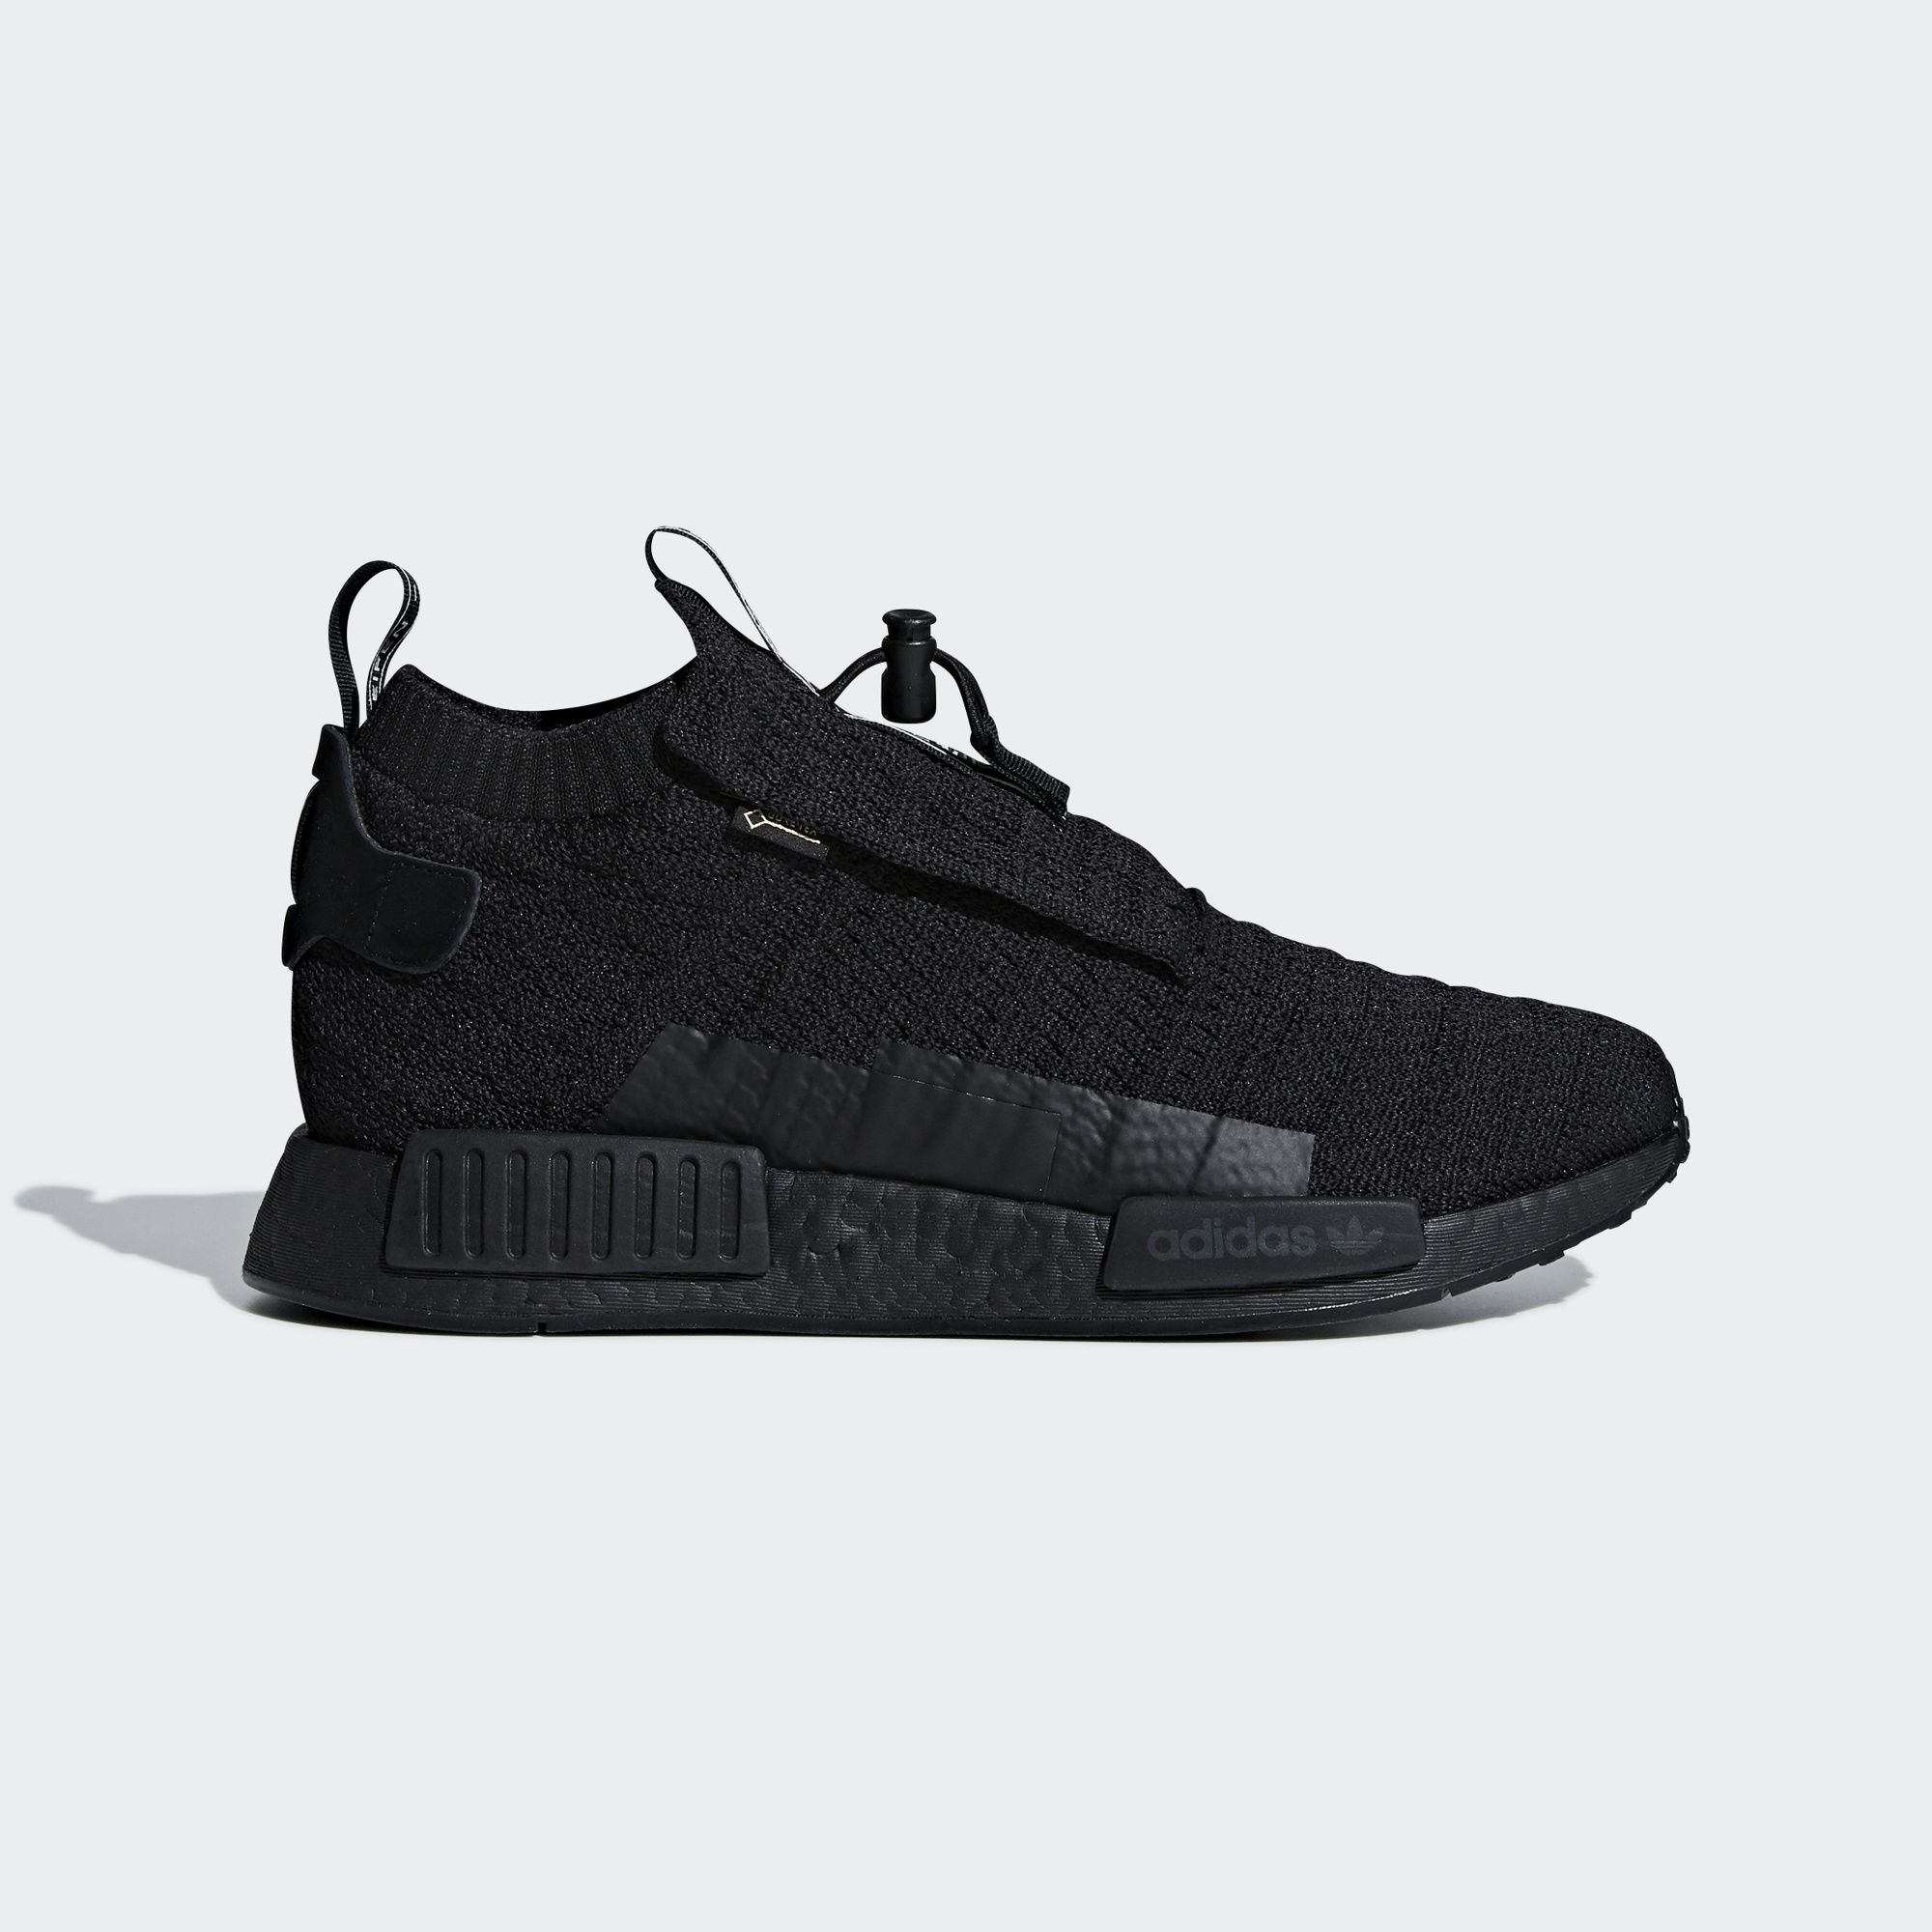 The adidas NMD TS1 'GORE-TEX' Has a